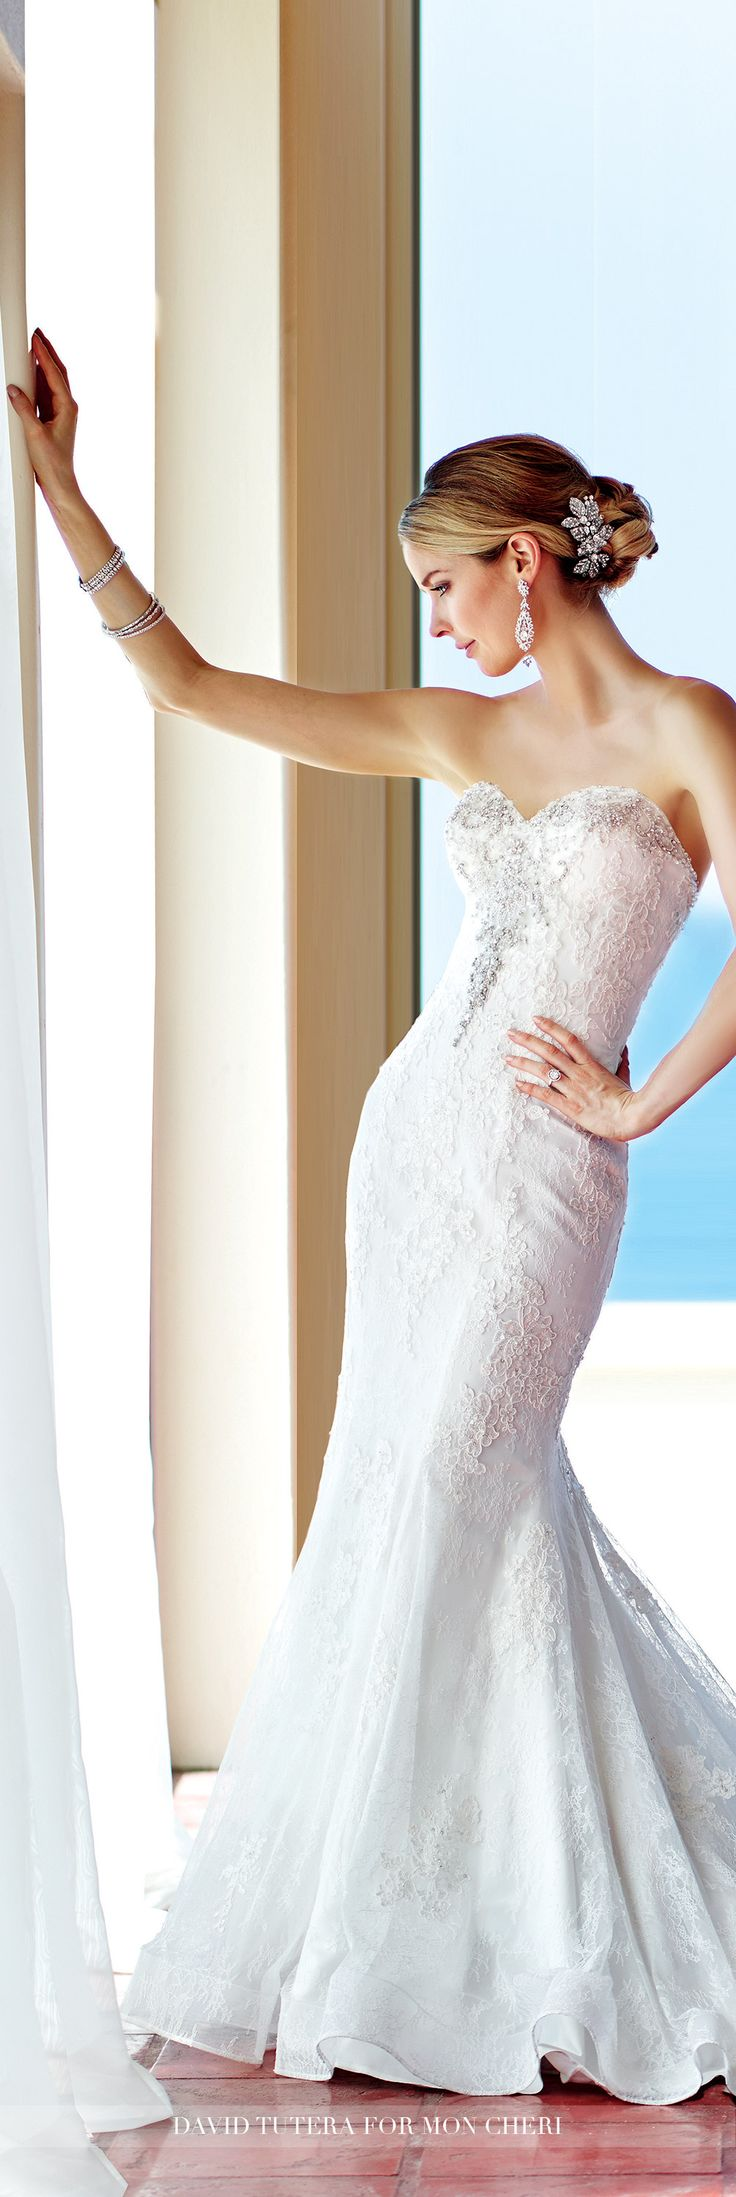 Best images about discounted in stock gowns on